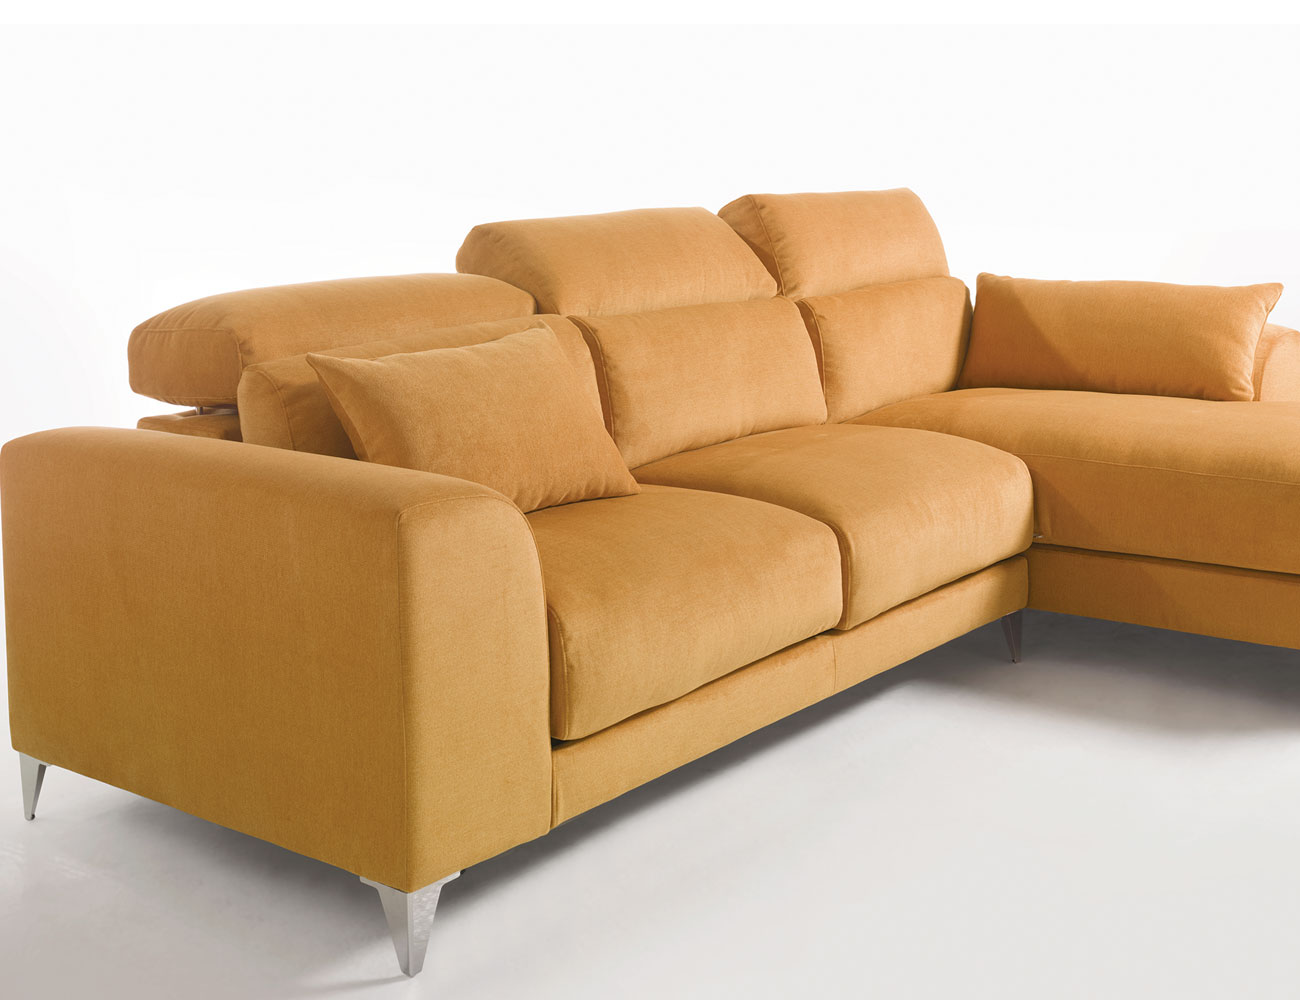 Sofa chaiselongue gran lujo decorativo patas altas amarillo 215